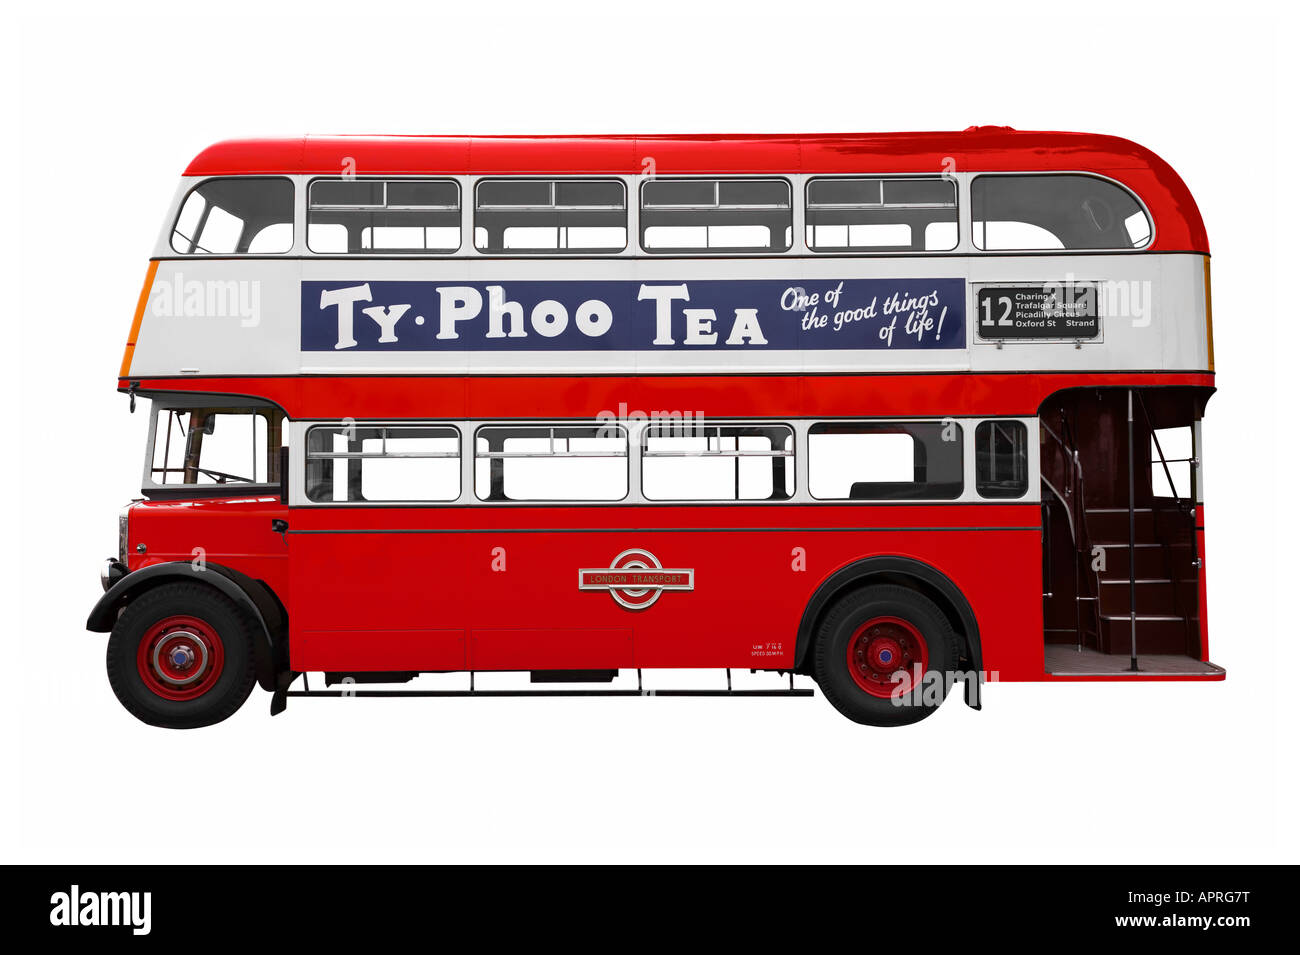 Vintage Red double decker bus isolated on white I also have the same bus available in my galery with no branding - Stock Image